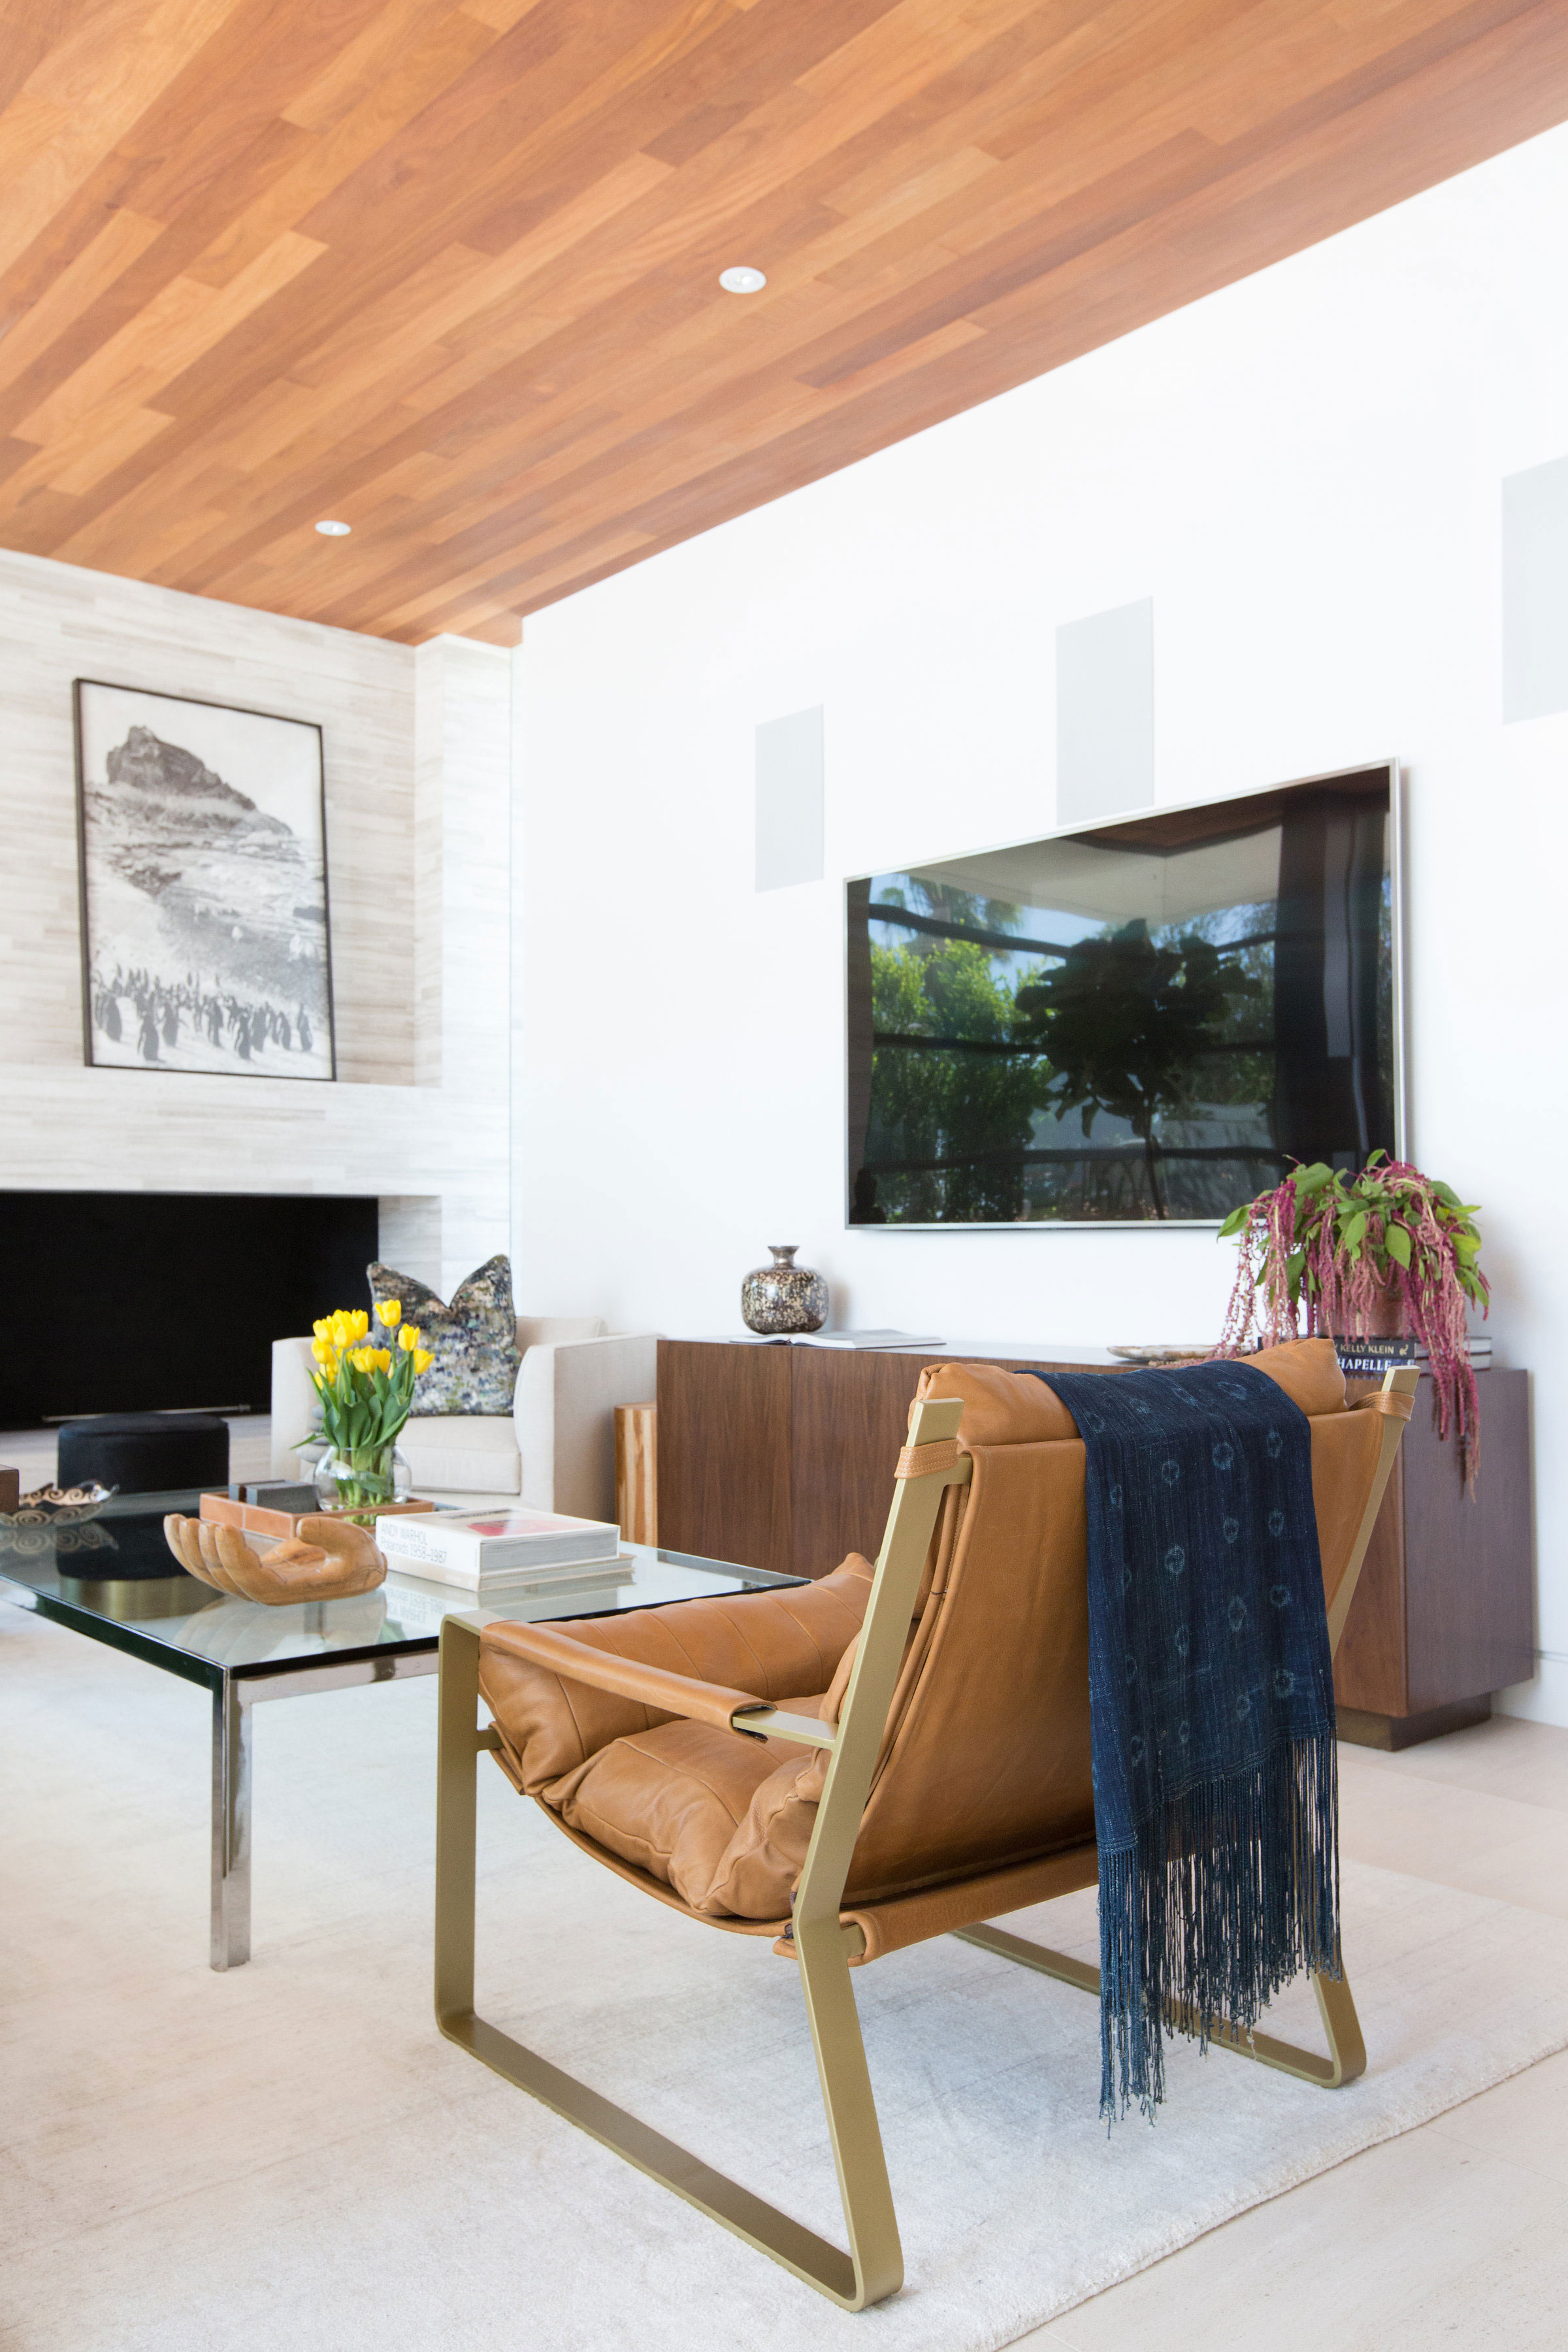 blackband_design_project_bel-air_sunken_living_room_2